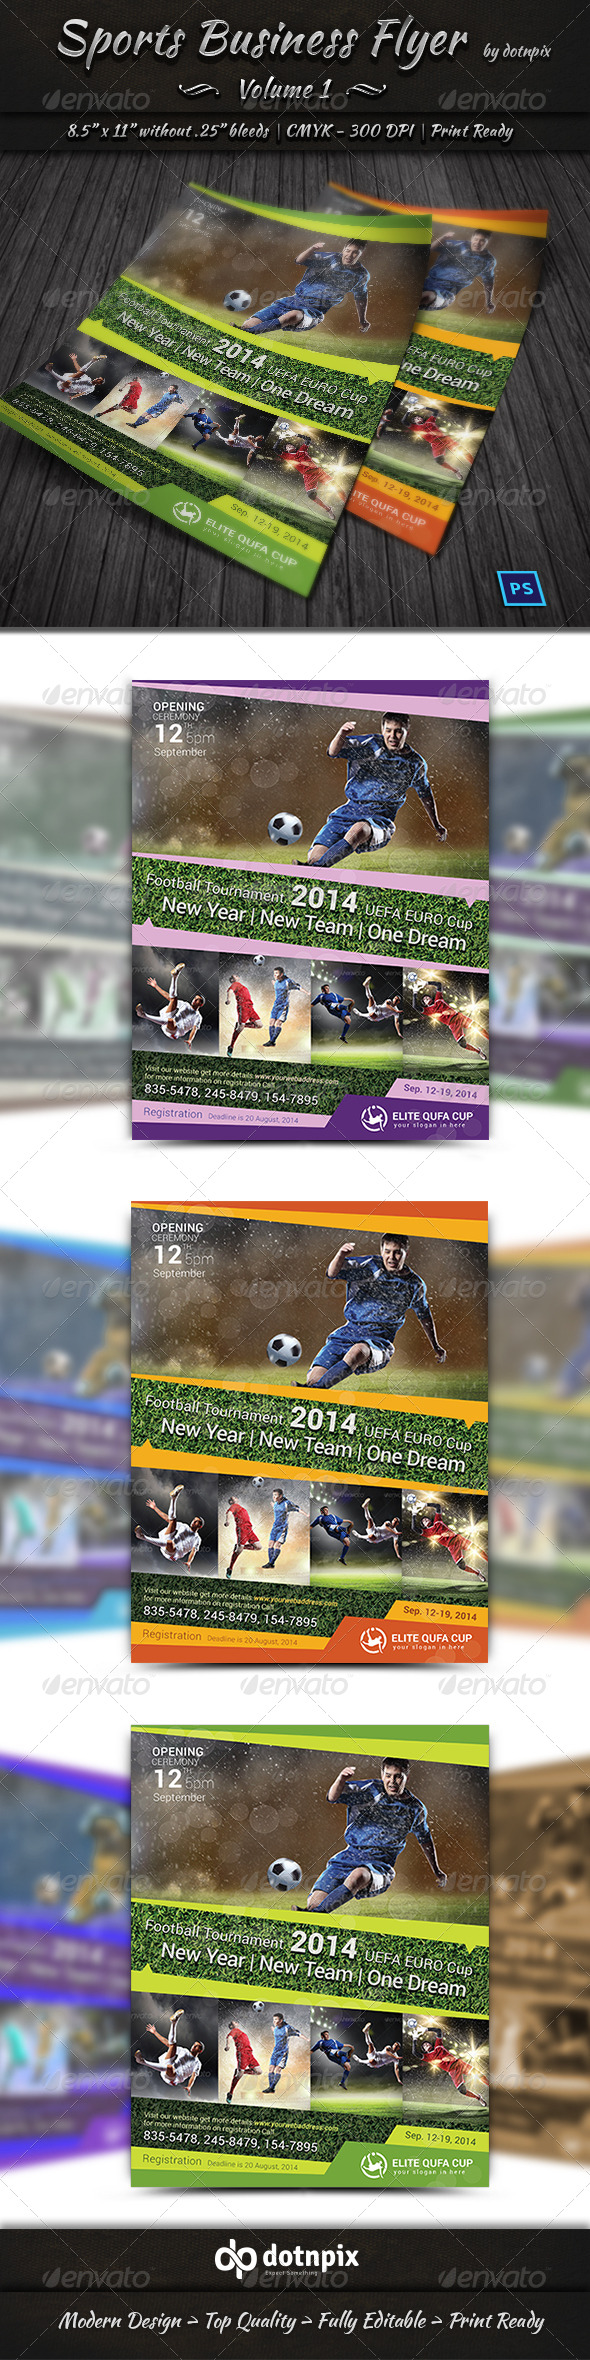 Sports Business Flyer | Volume 1 - Sports Events